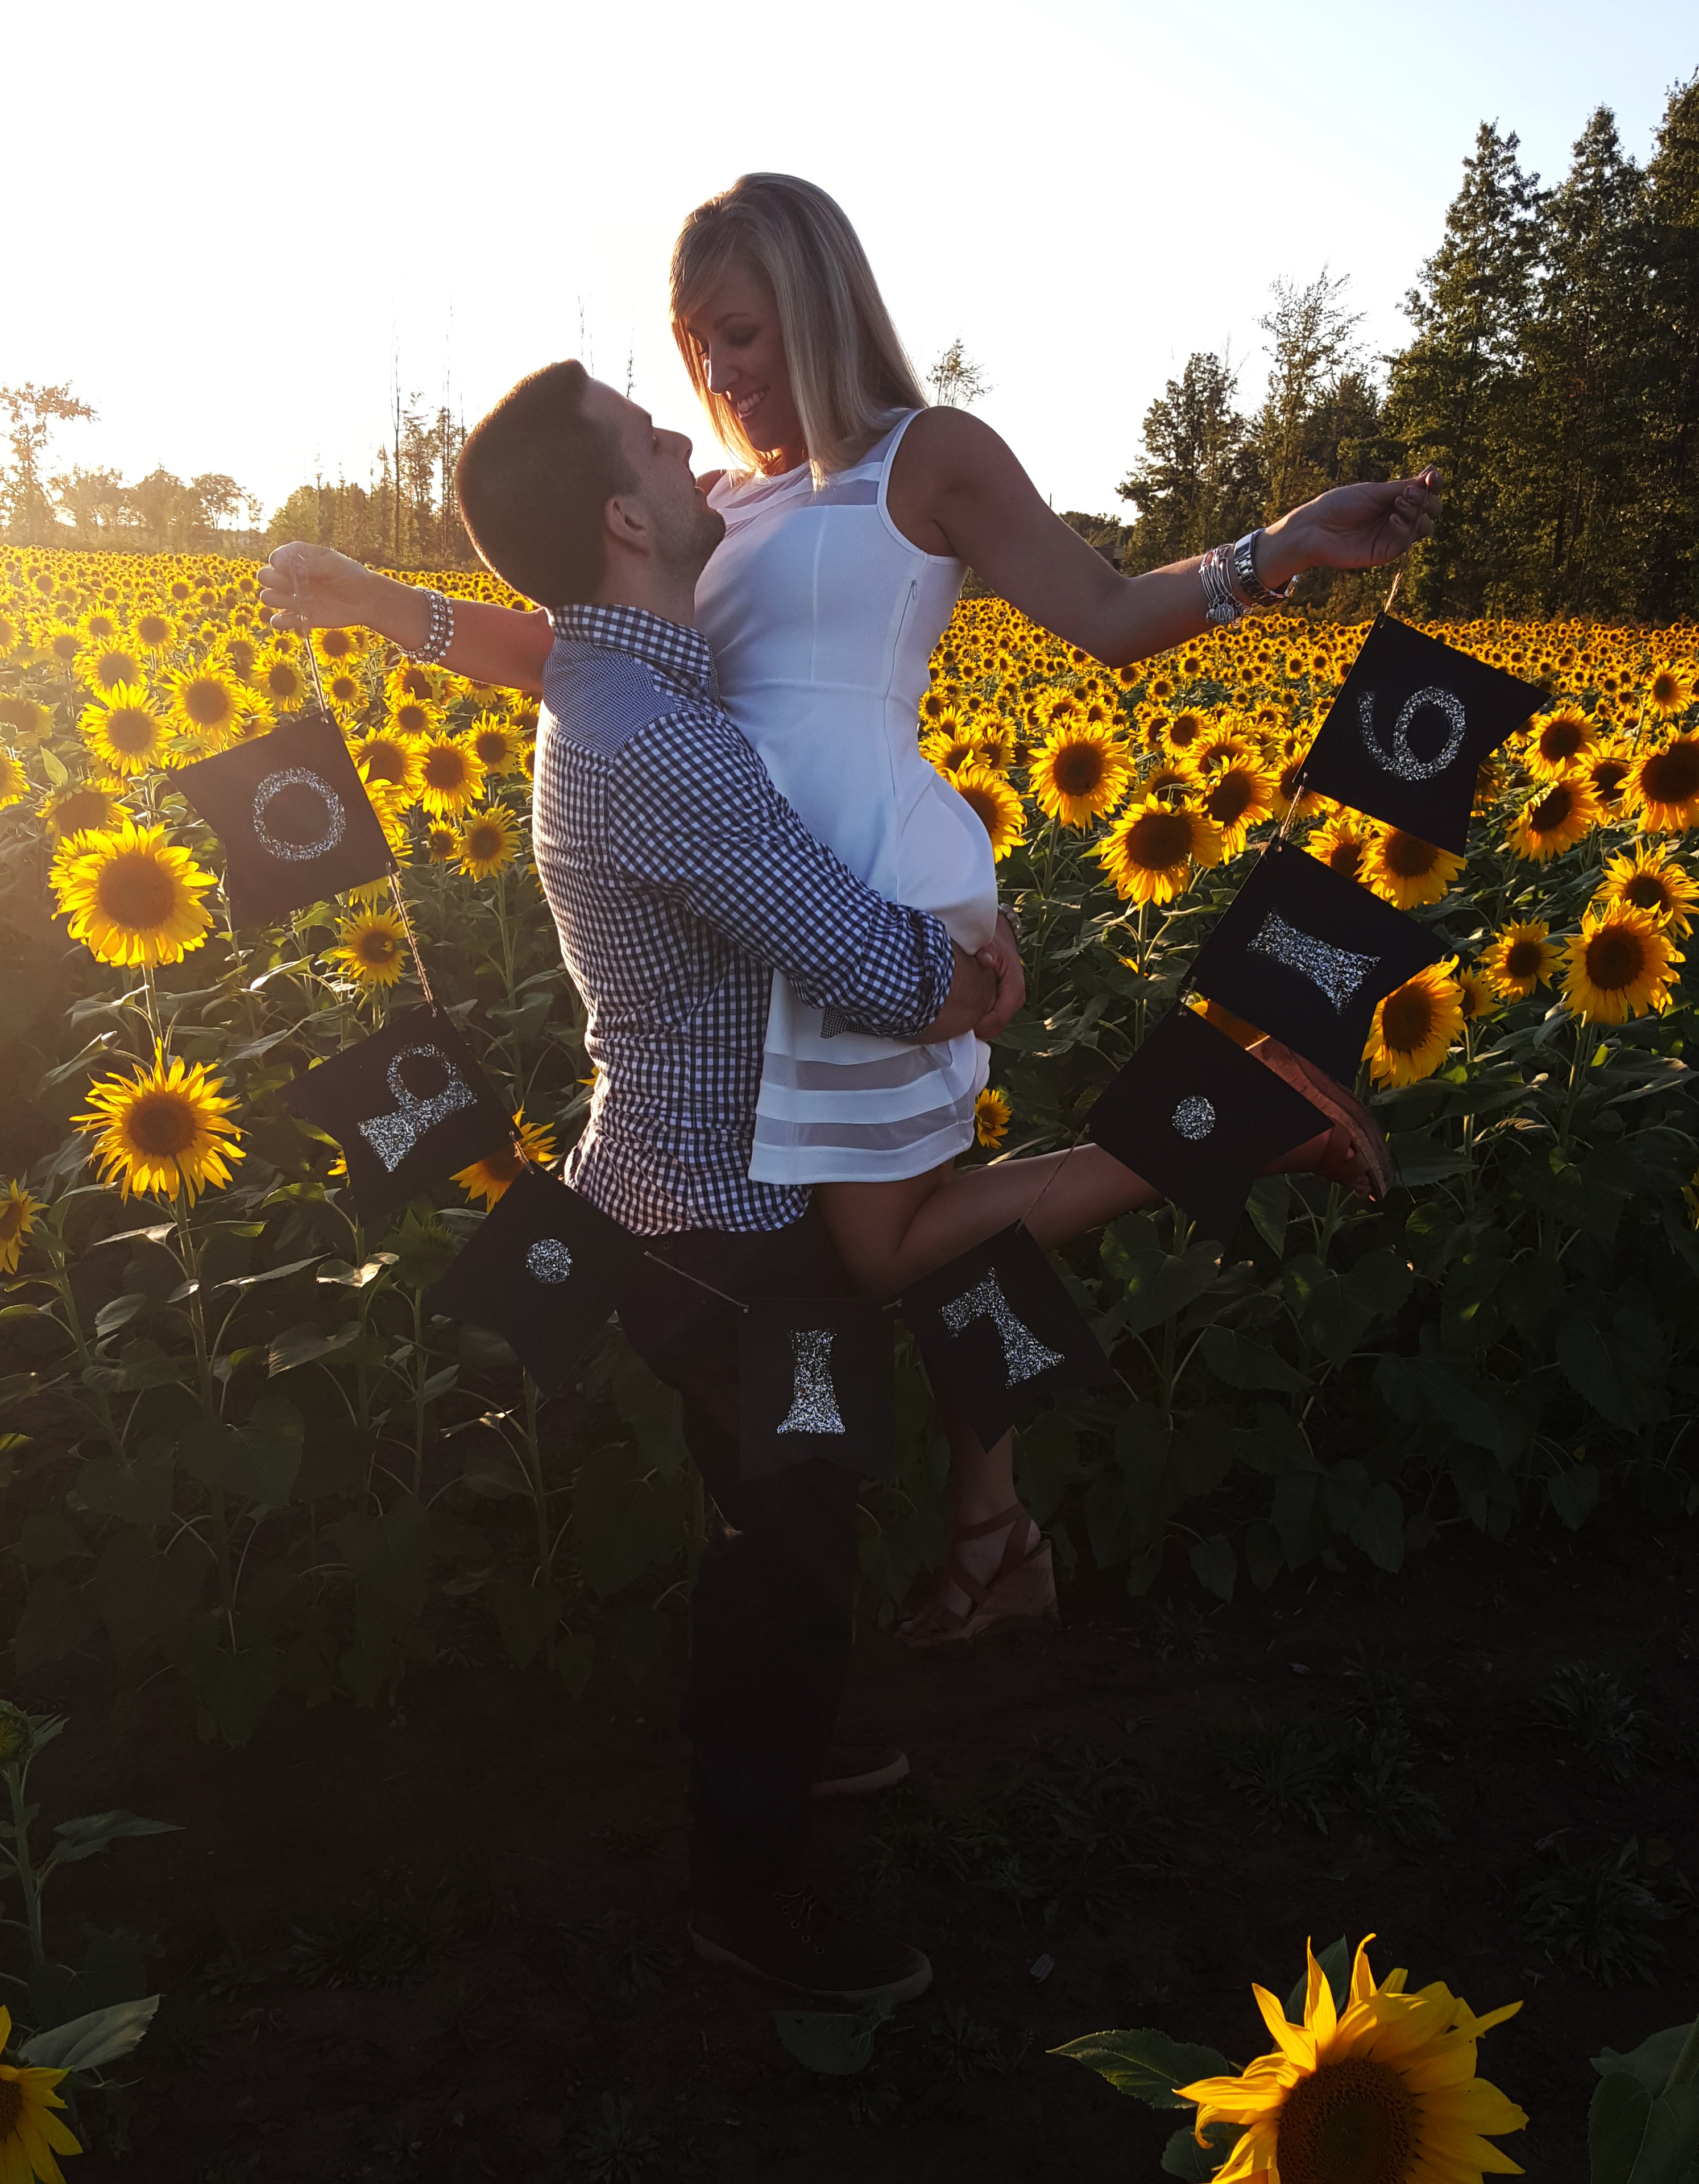 north ridgeville singles & personals Meet single men in north ridgeville oh online & chat in the forums dhu is a 100% free dating site to find single men in north ridgeville.